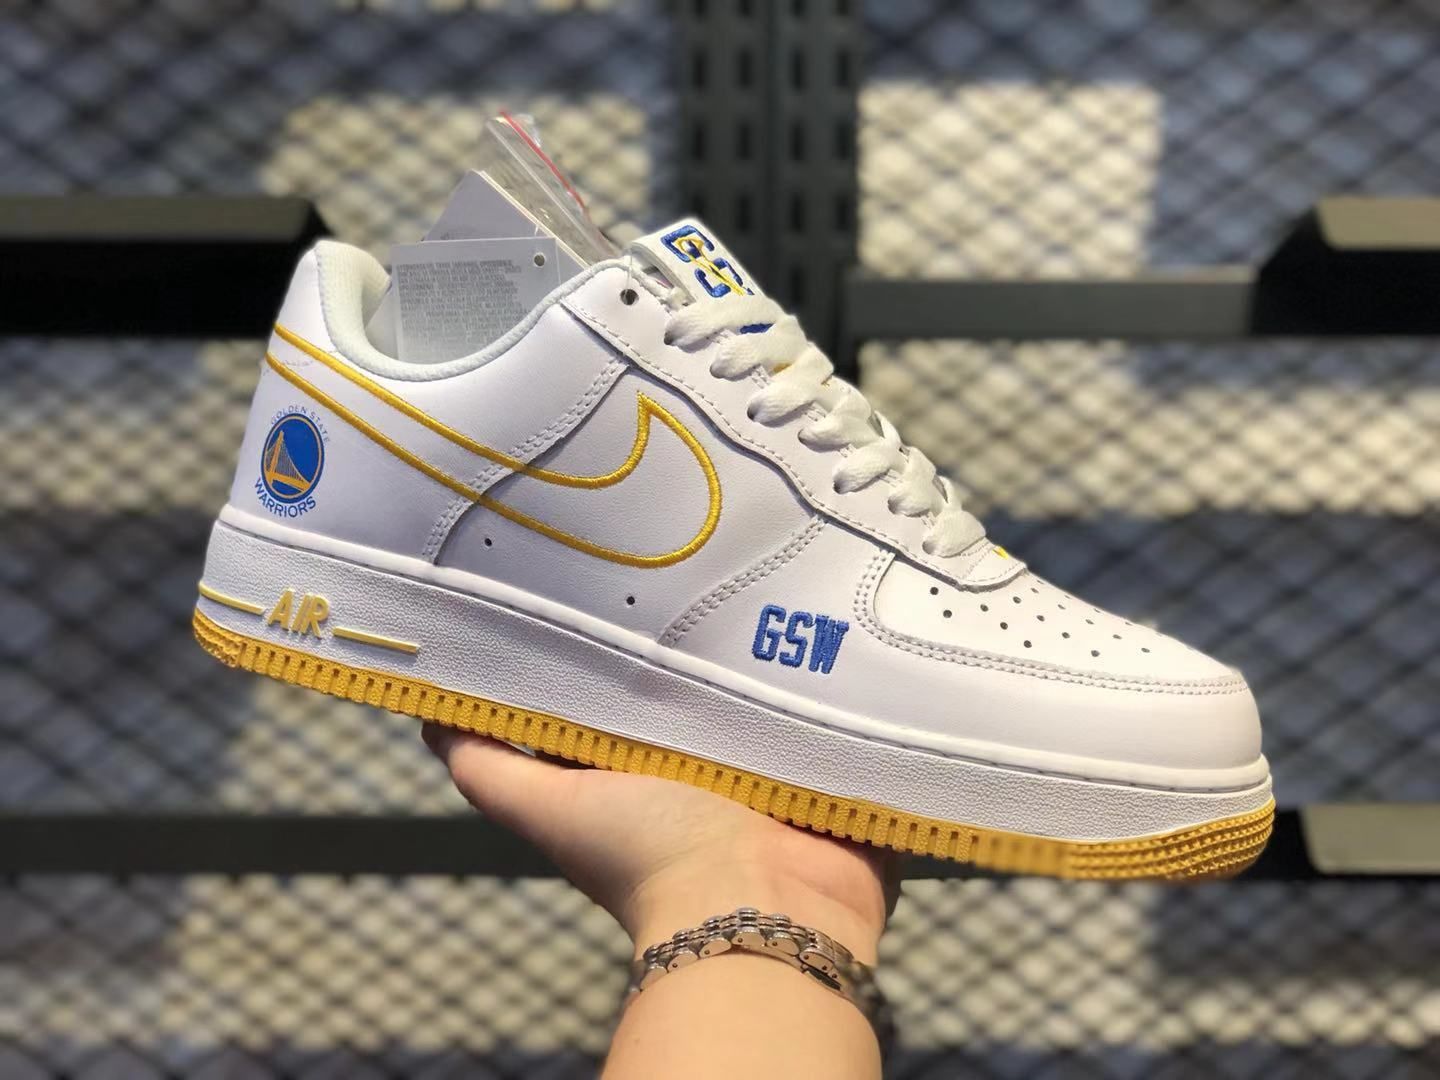 Nike Air Force 1 Low White/Royal Blue-Yellow Shoes To Buy BQ5361-083